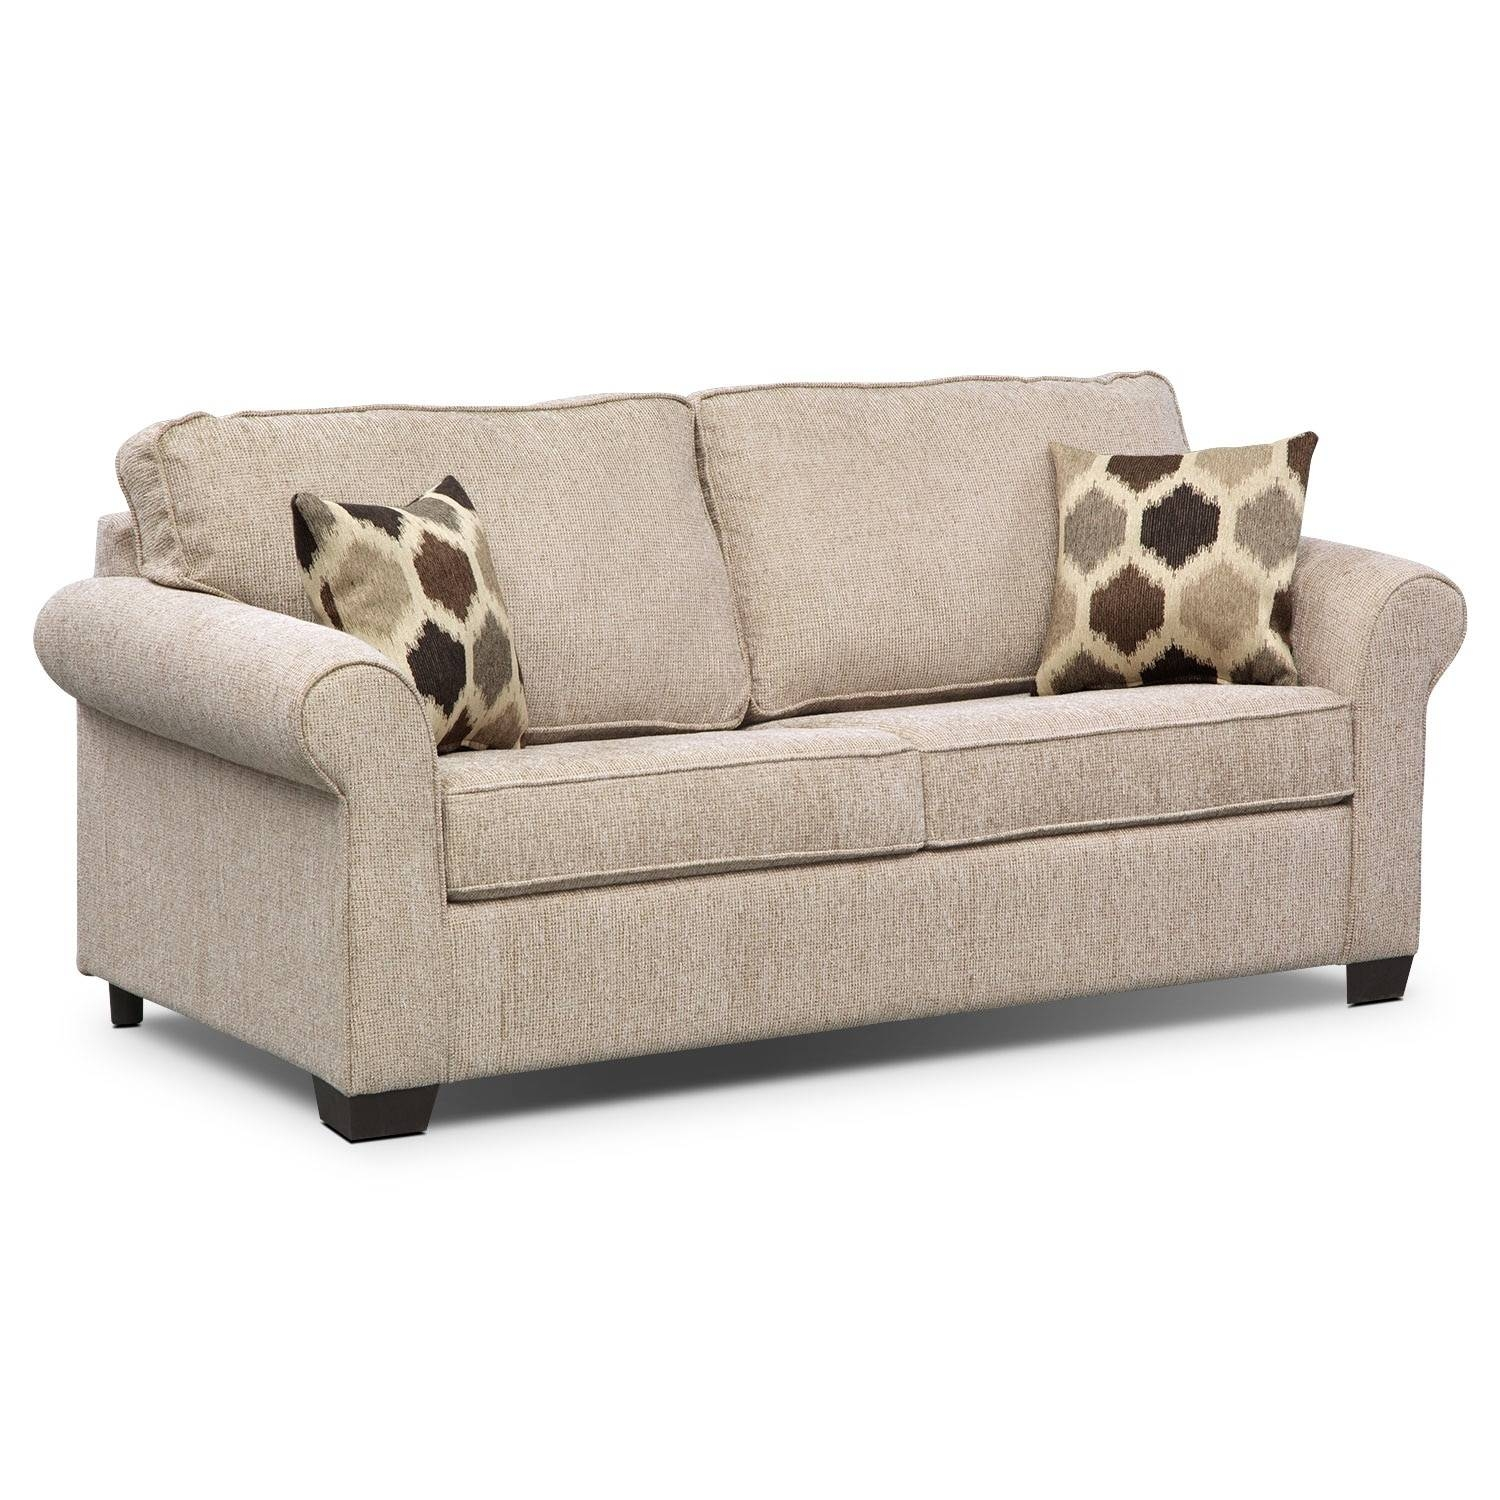 Sleeper Sofas | Value City Furniture | Value City Furniture with regard to Slipper Sofas (Image 6 of 15)